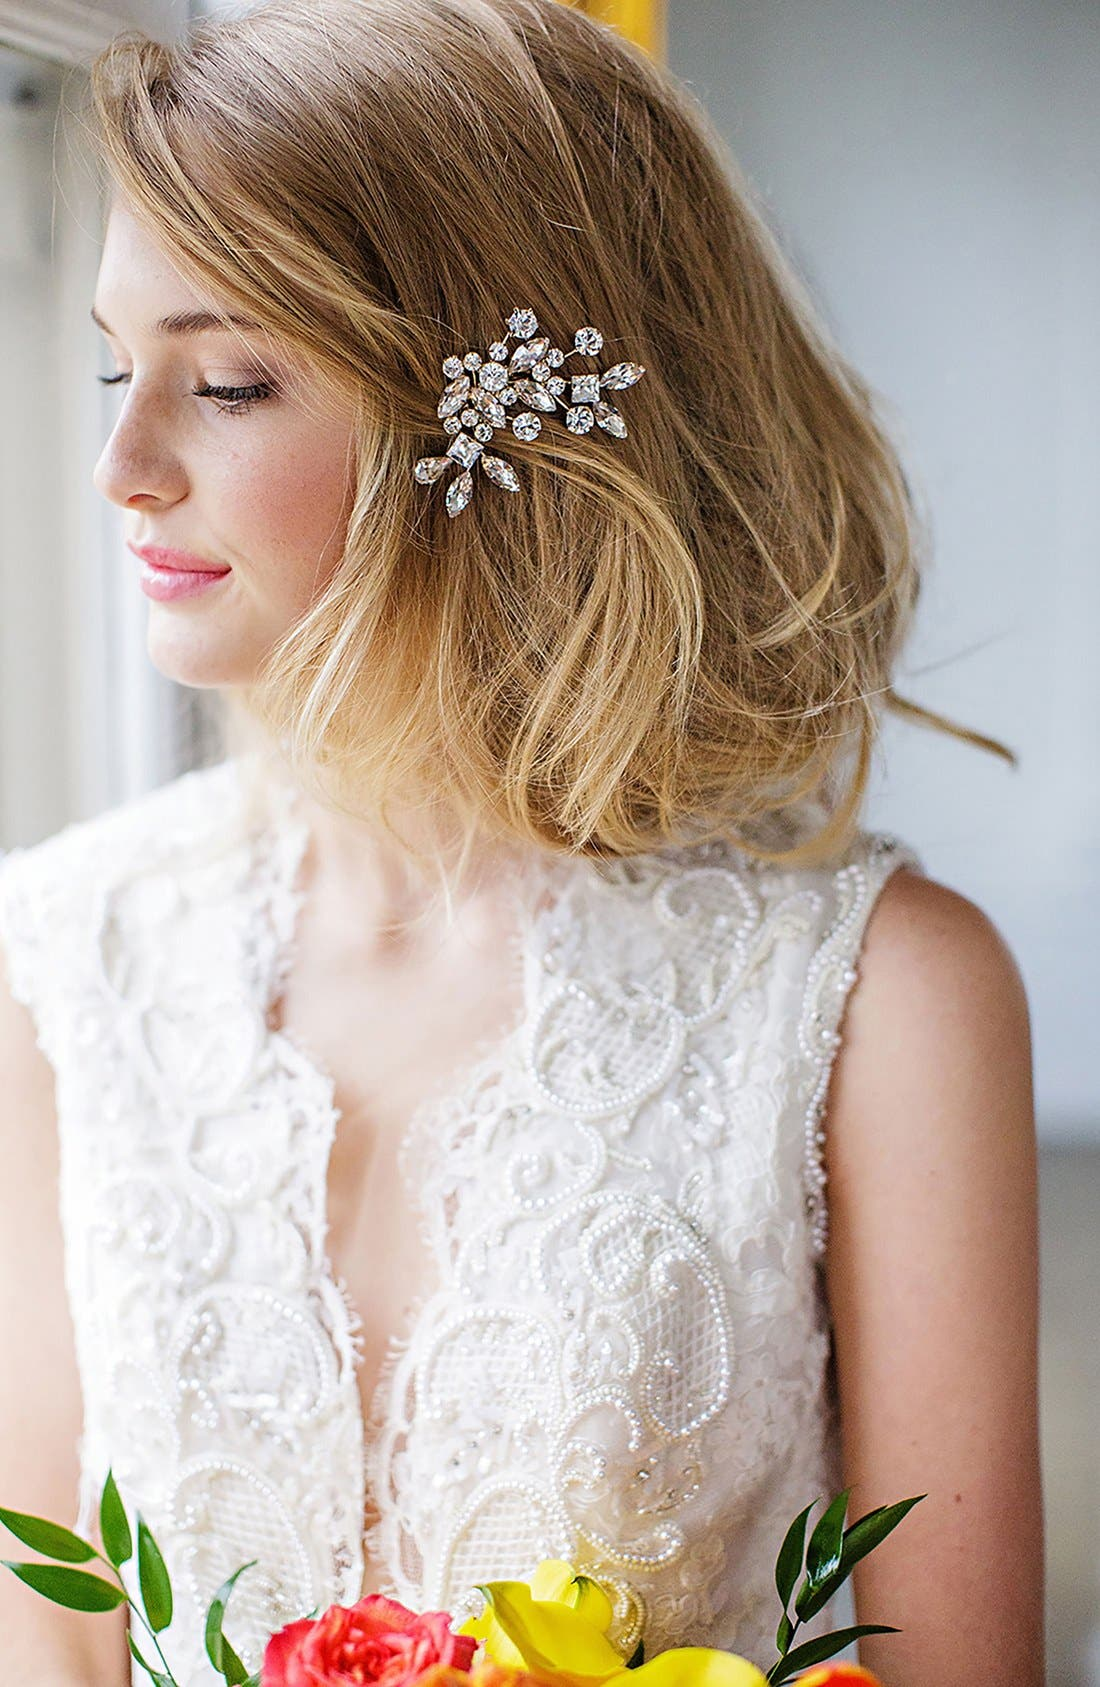 Alternate Image 1 Selected - Brides & Hairpins 'Caprice' Jeweled Hair Comb